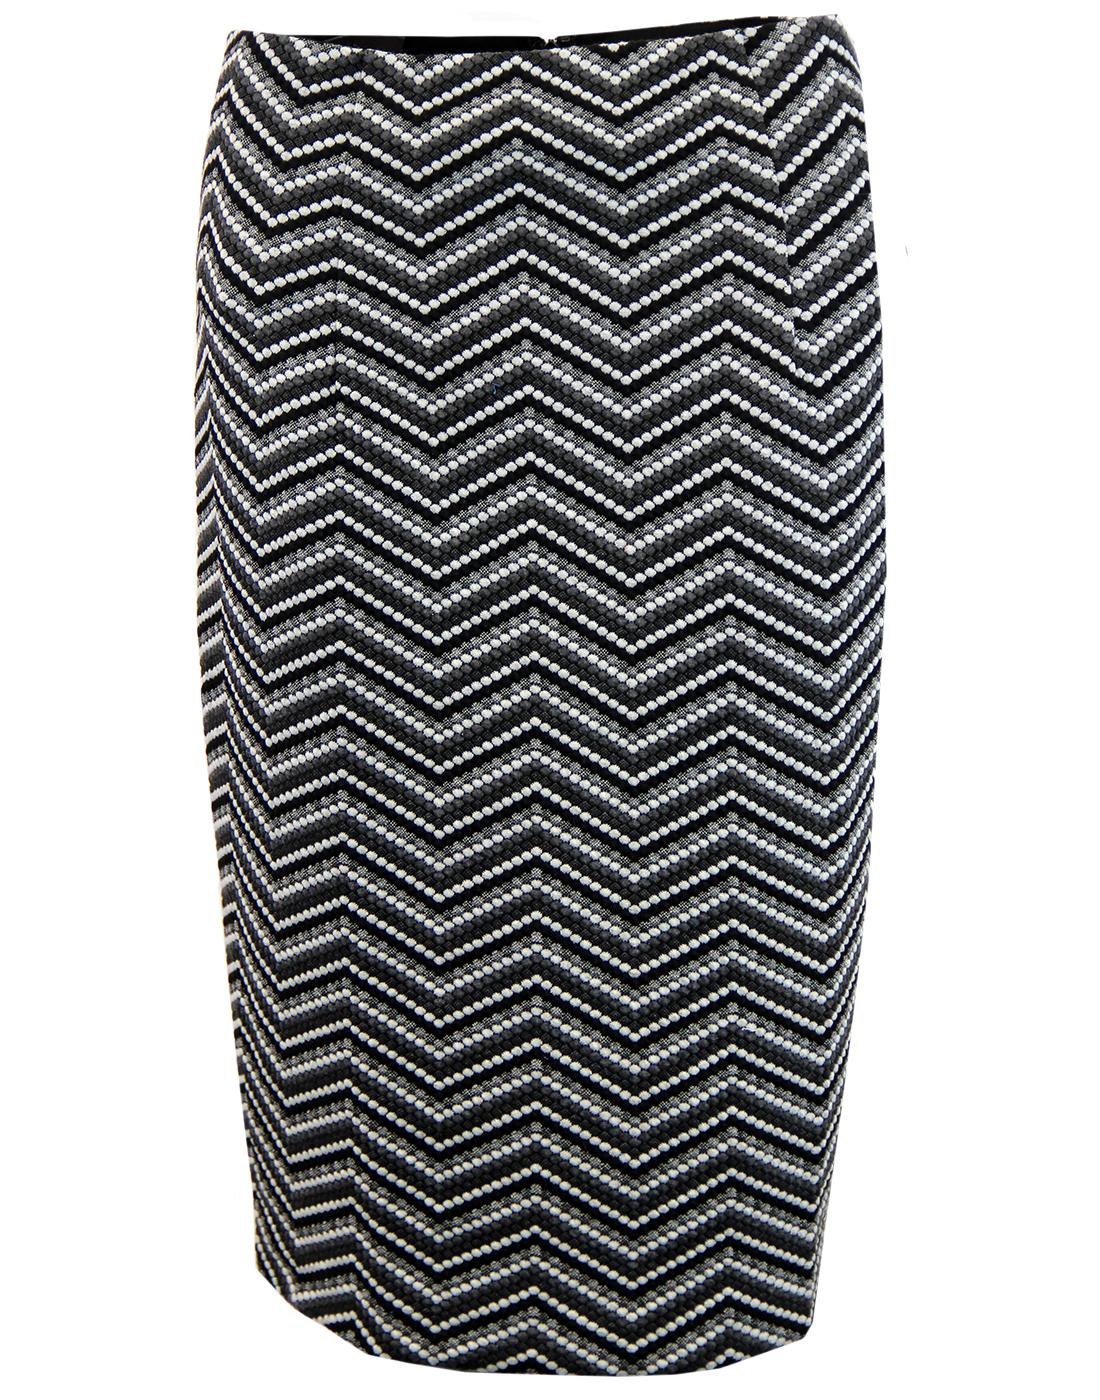 TRAFFIC PEOPLE Retro 60s Geo Woven Pencil Skirt